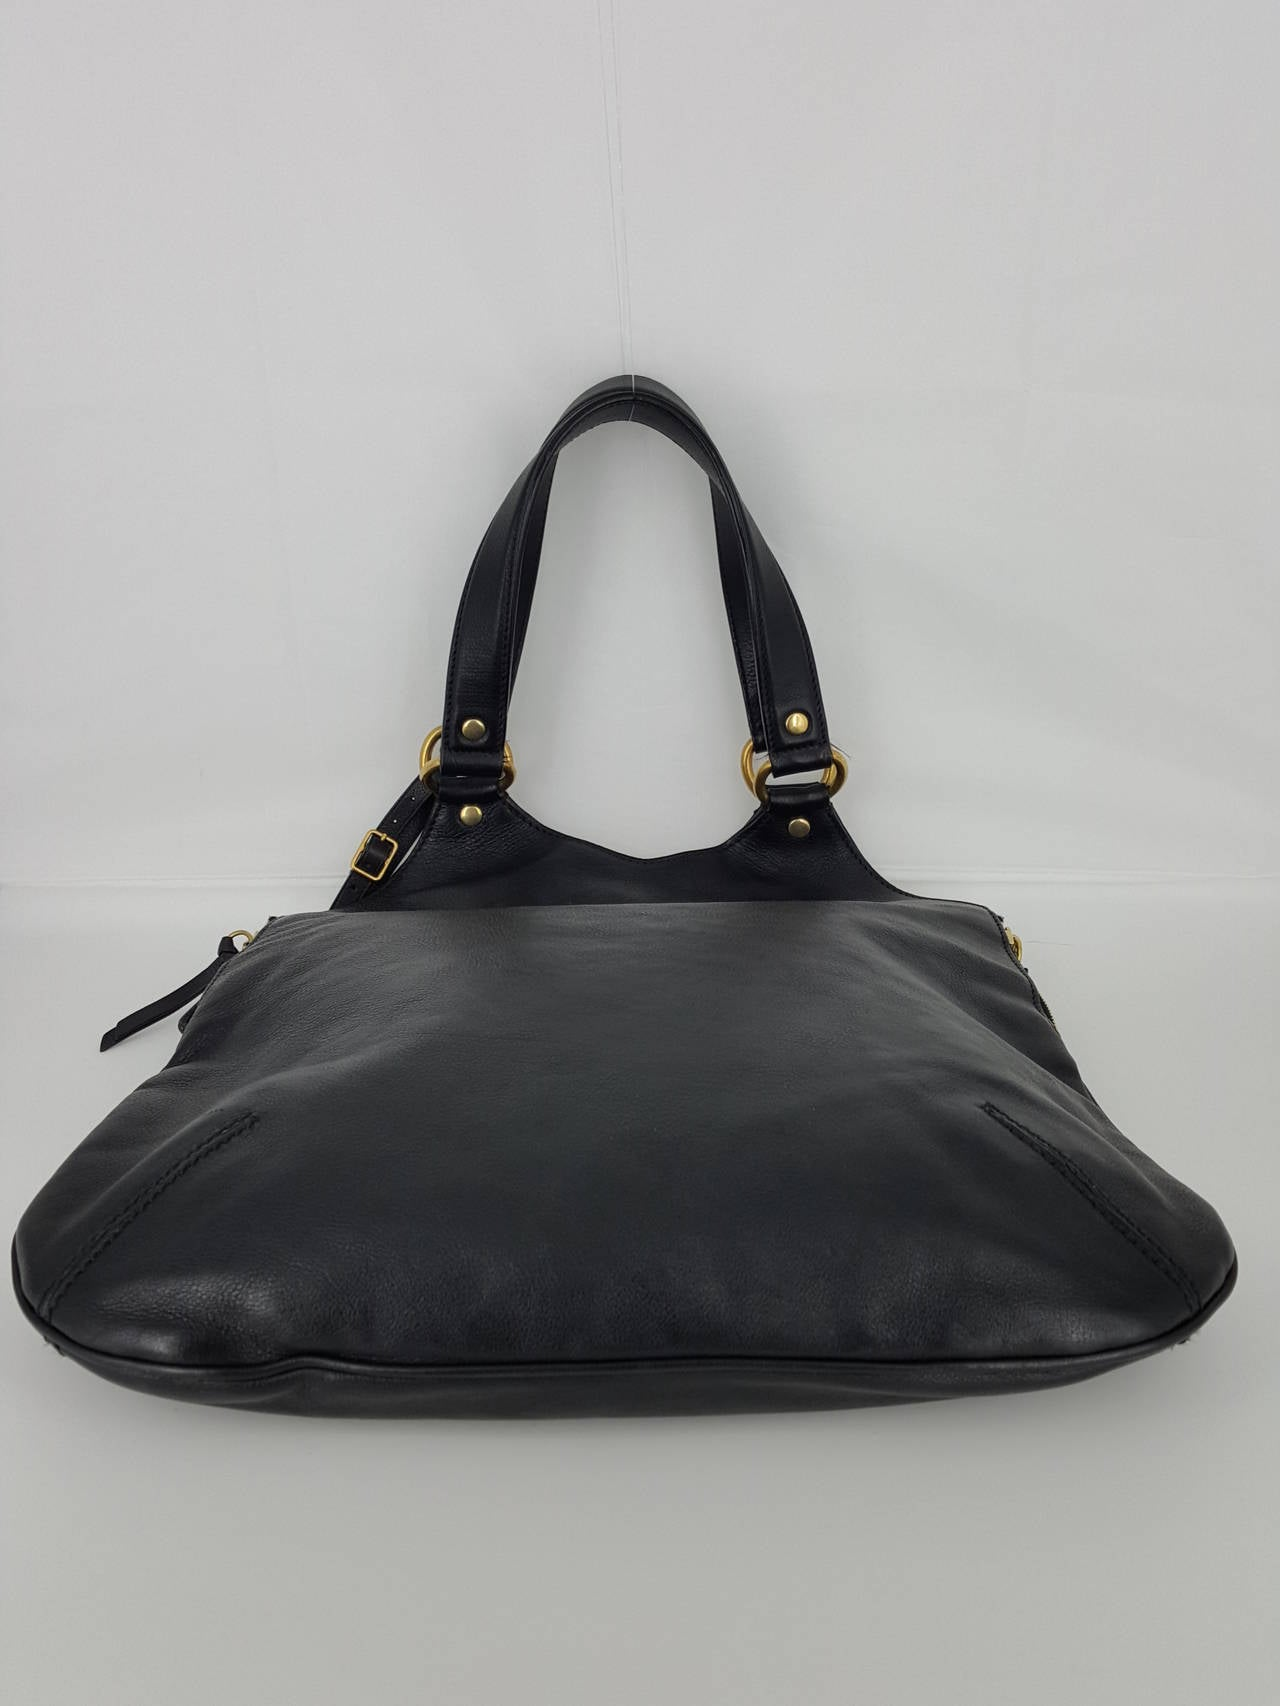 YSL Yves Saint Laurent Black Leather Tribute Bag. For Sale 1